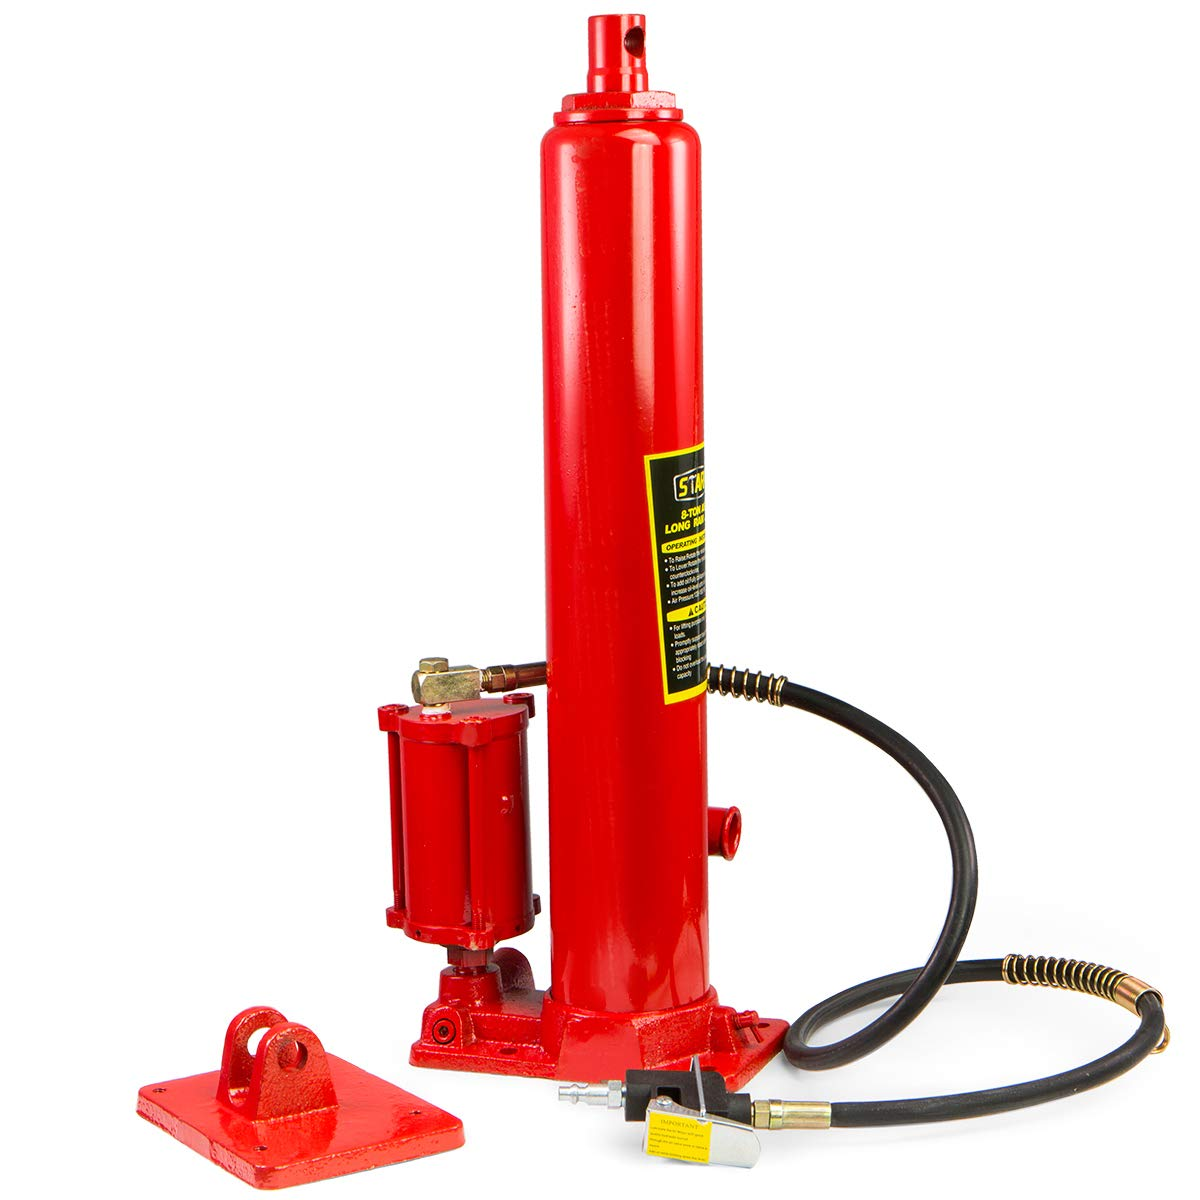 XtremepowerUS 8 Ton Air/Hydraulic Long Ram Jack Piston Ram 8-Ton Capacity Cherry Crane Shop Engine Hoist Lift, Red by XtremepowerUS